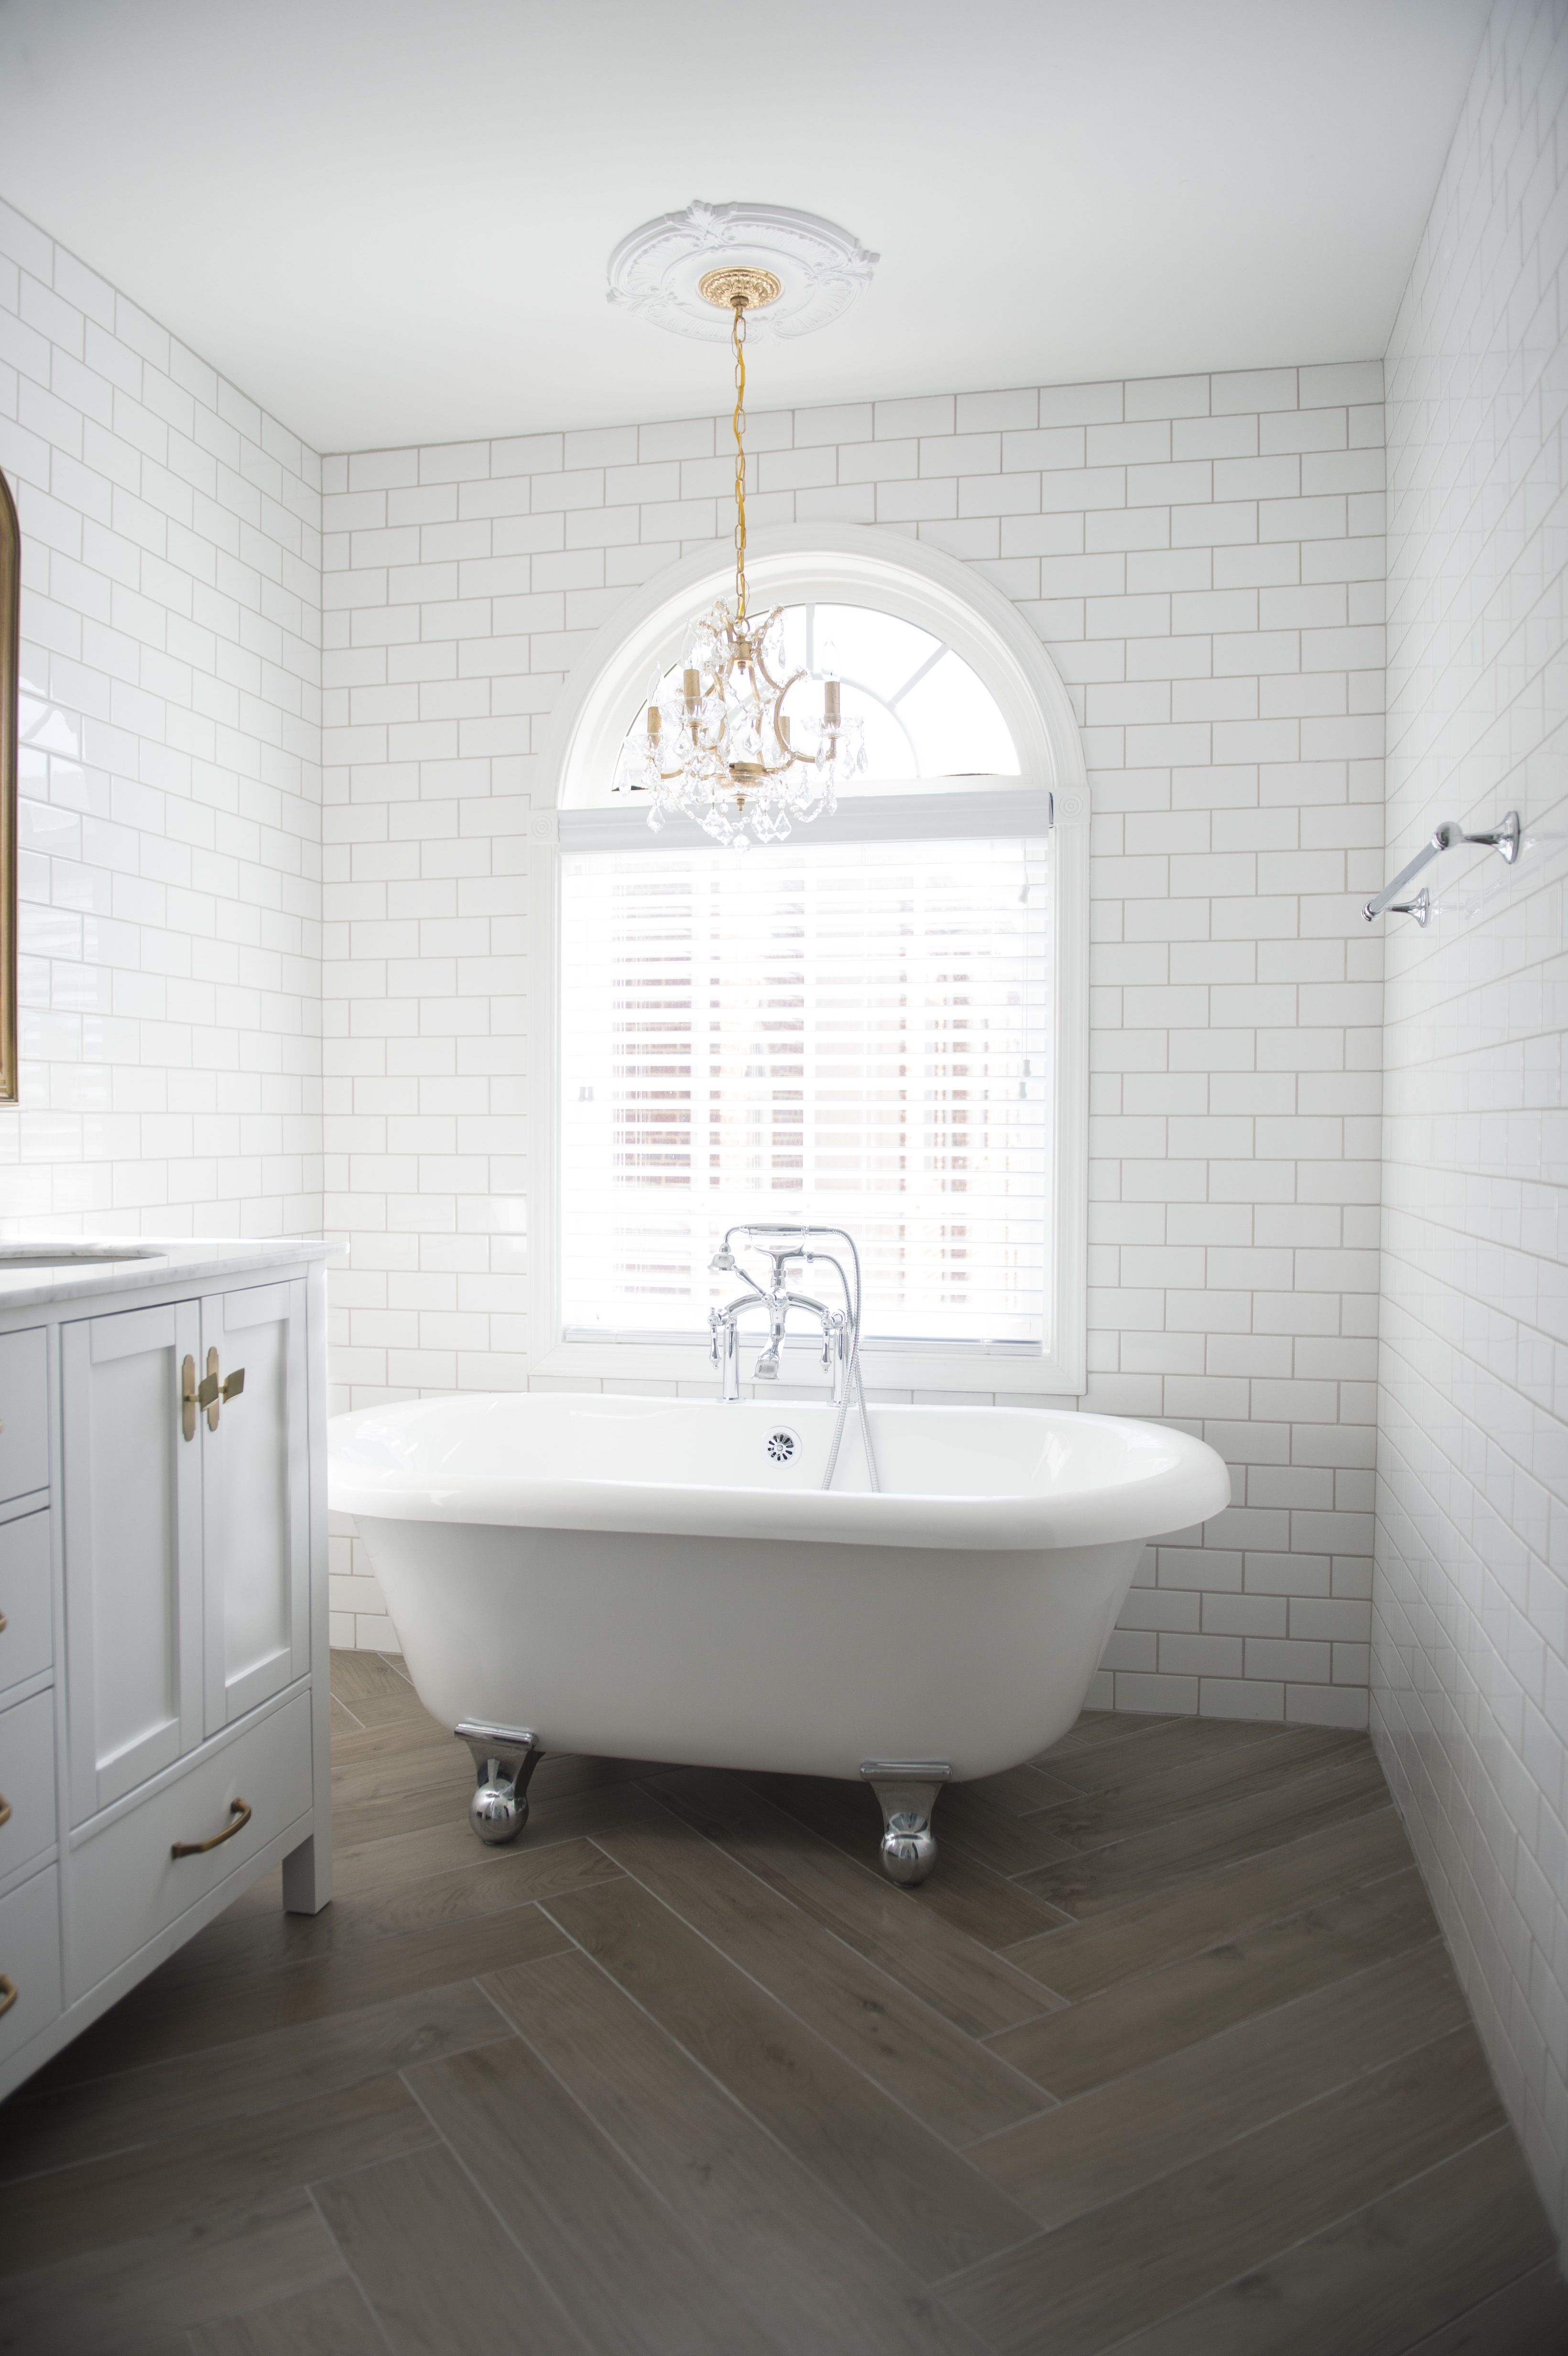 Before & After: See This Basic Bathroom Go Glam | Pinterest ...